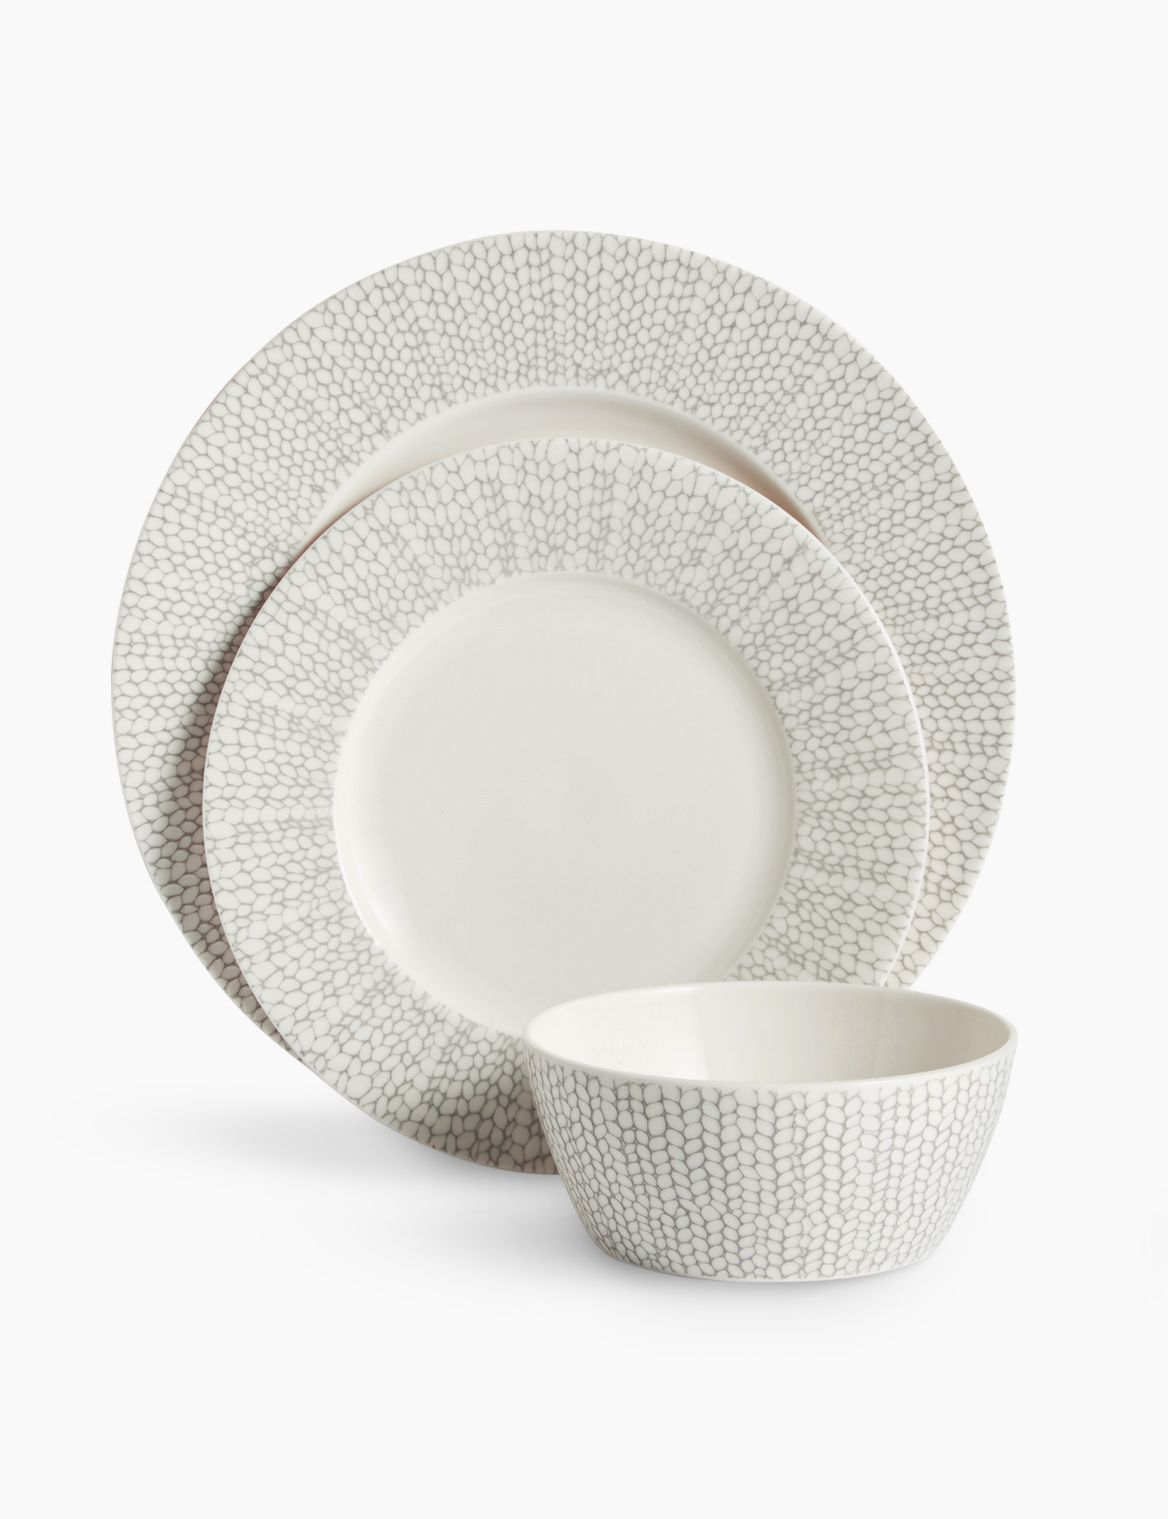 12 Piece Palermo Dinner Set light grey mix